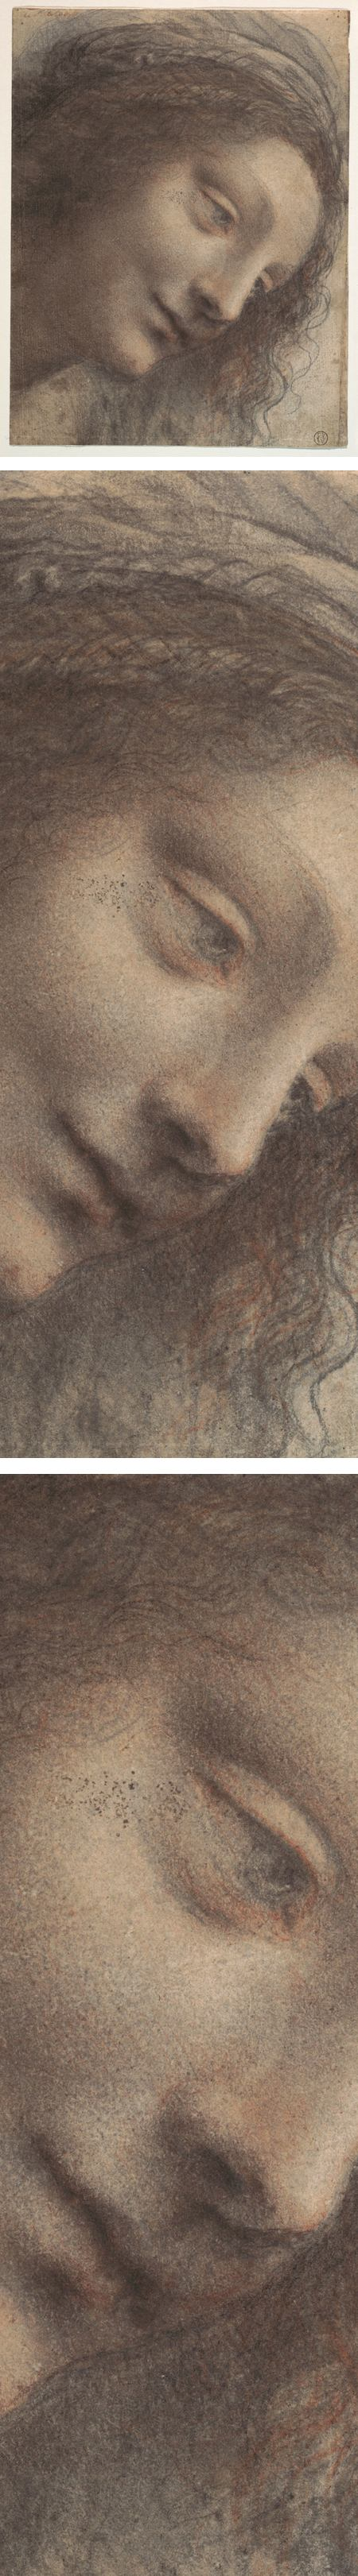 The Head of the Virgin in Three-Quarter View Facing Right, Leonardo da Vinci